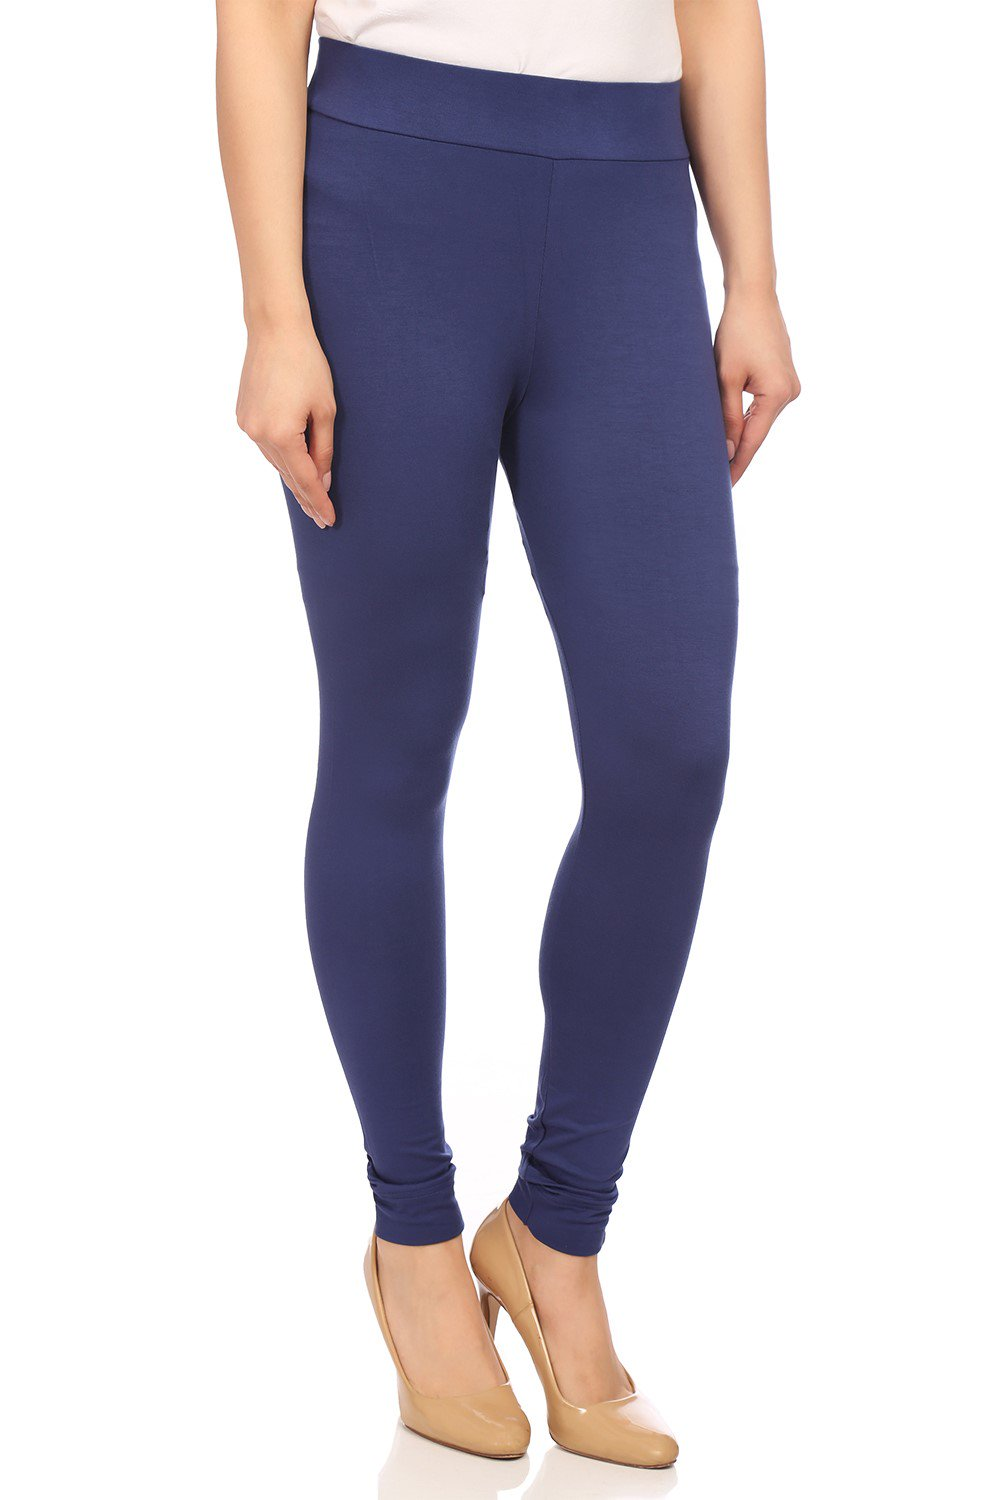 Navy Blue Viscose and Lycra Blue Leggings